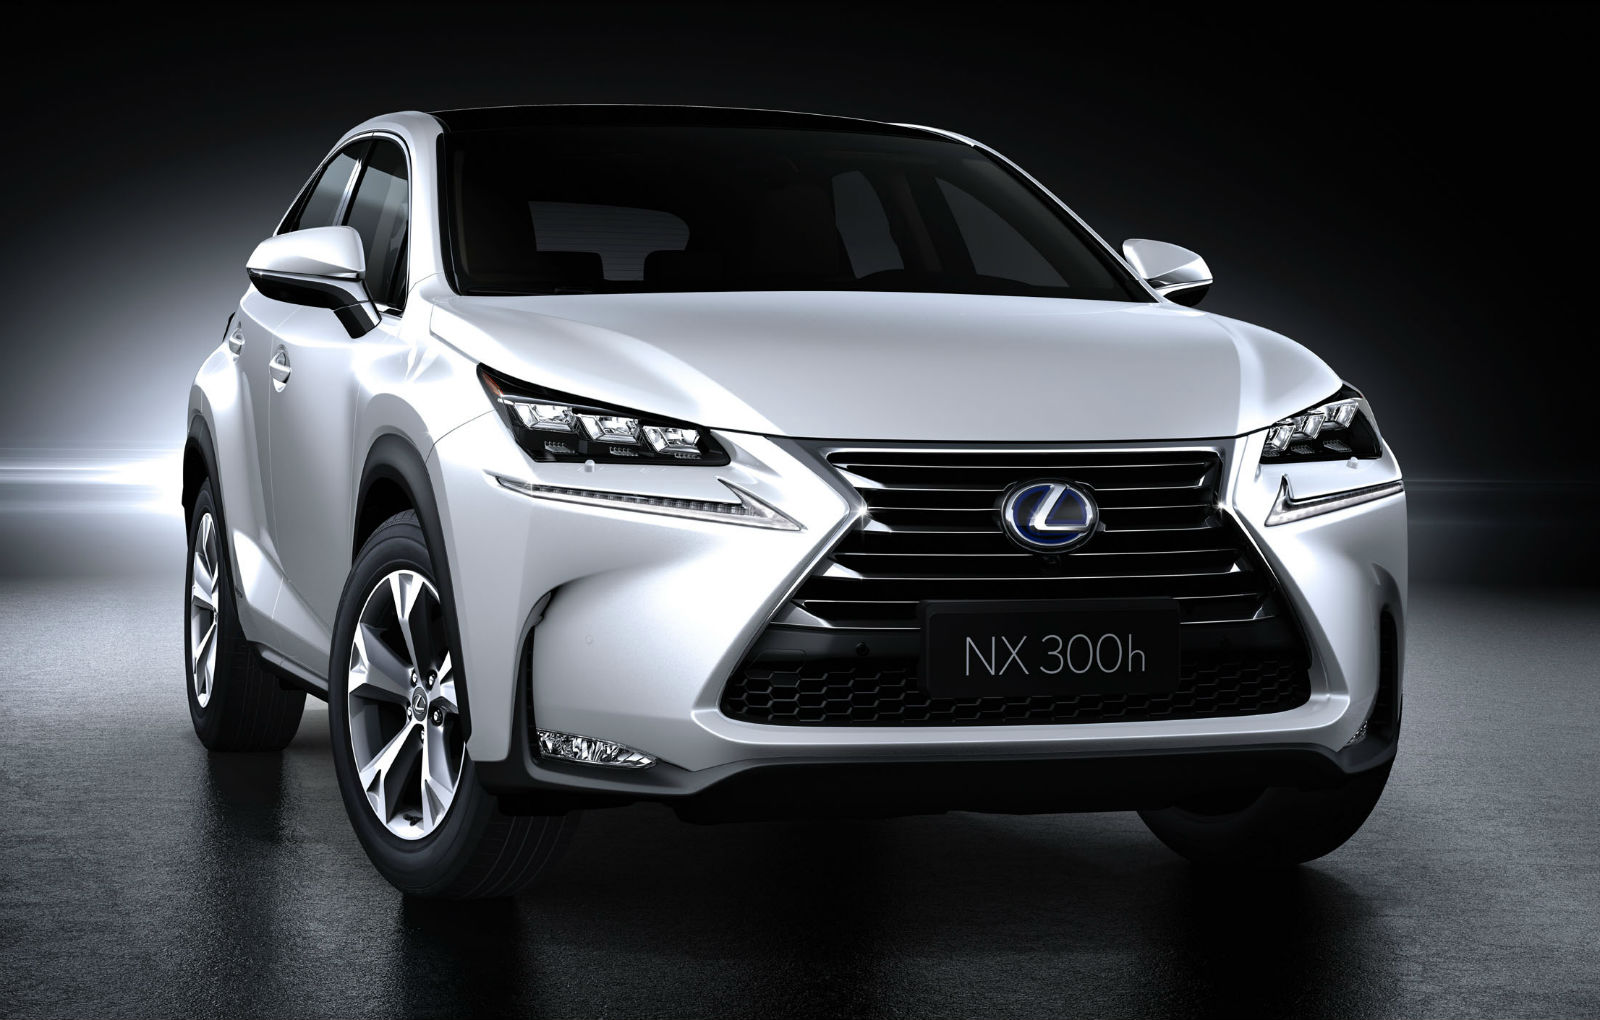 2015 Lexus NX 300h Car Wallpaper   HD 1600x1020